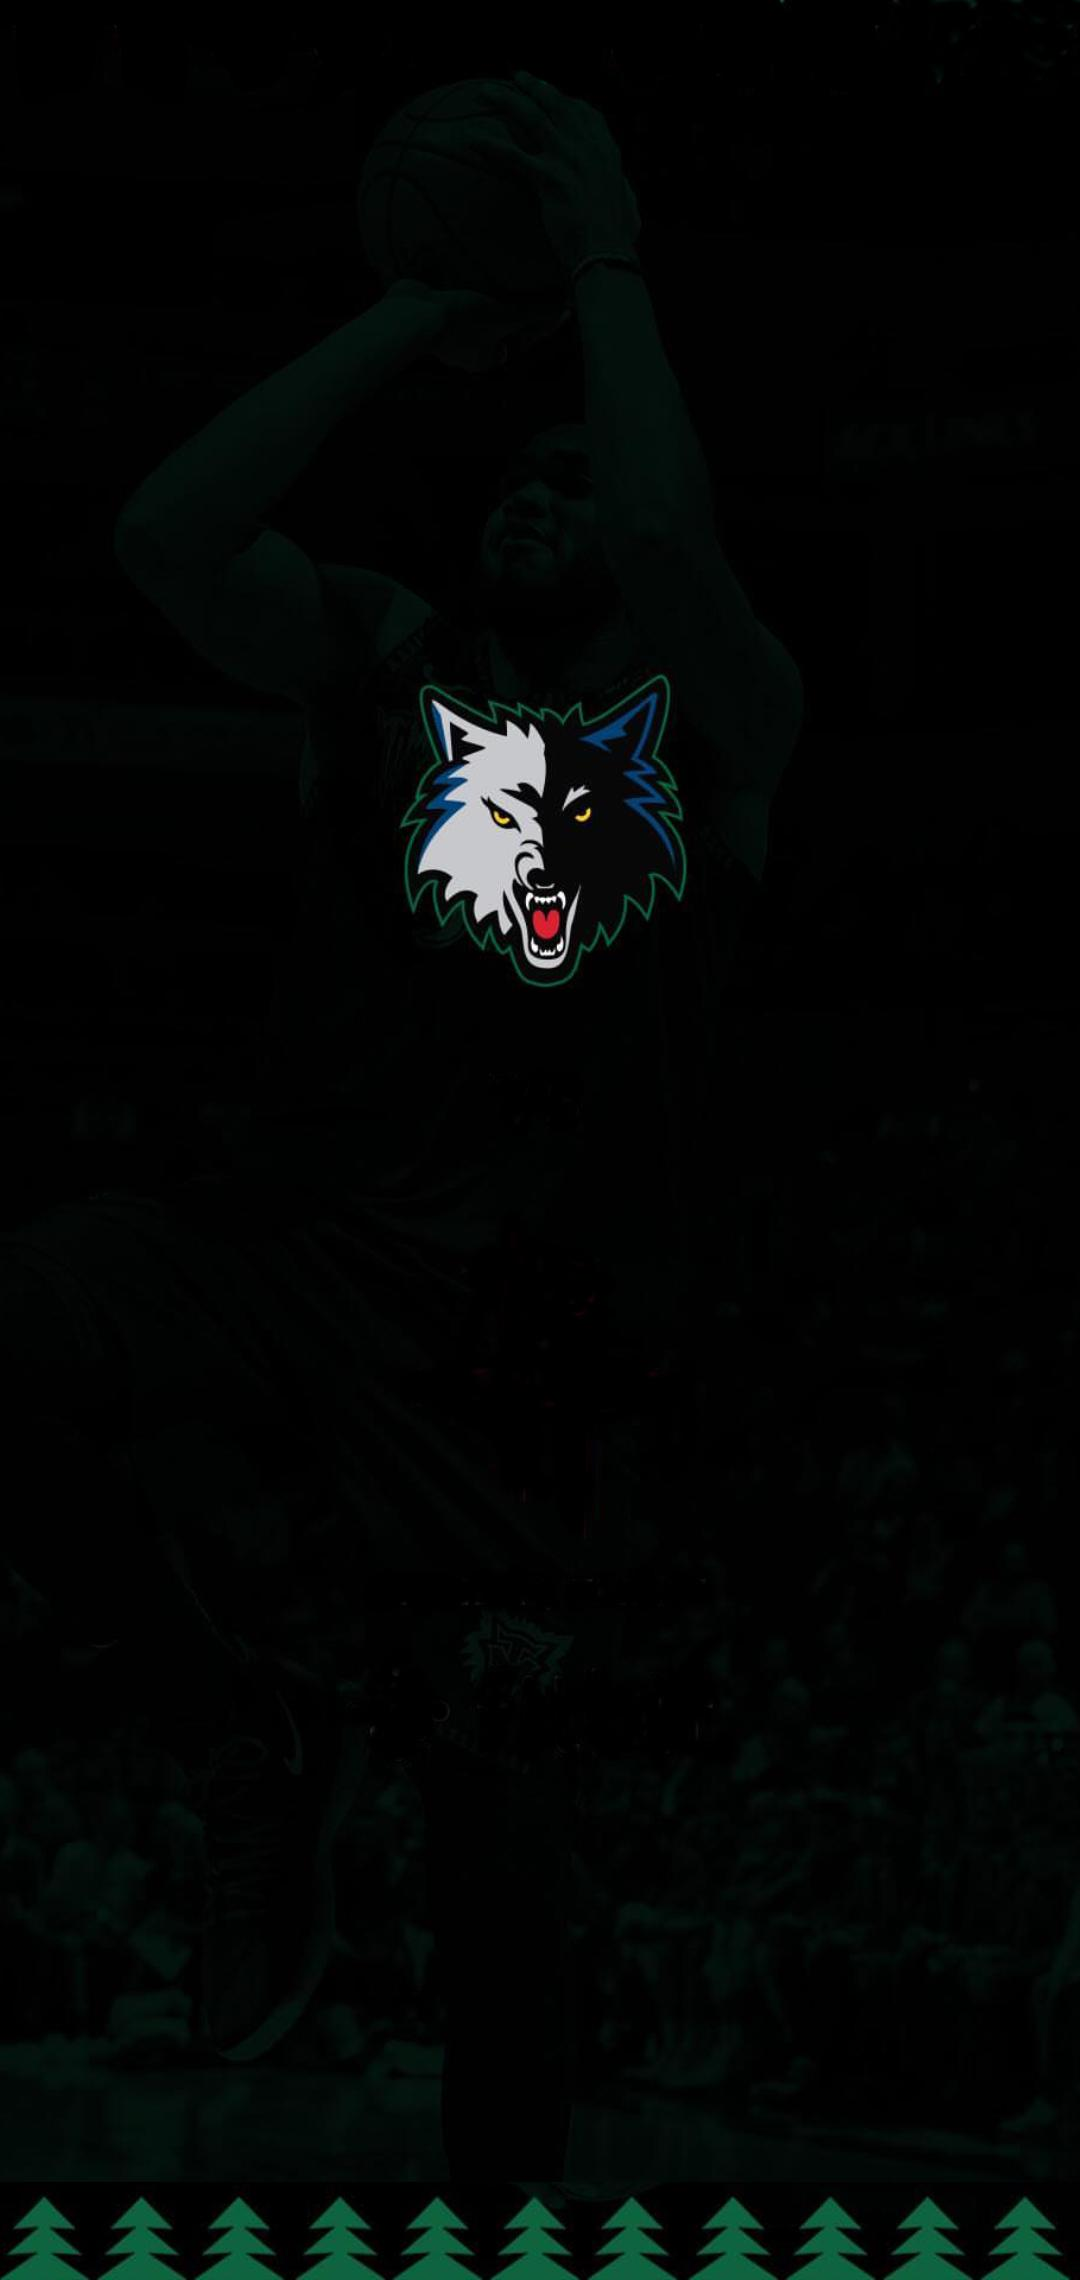 Made a mobile wallpaper out of an IG story from the wolves 1080x2280